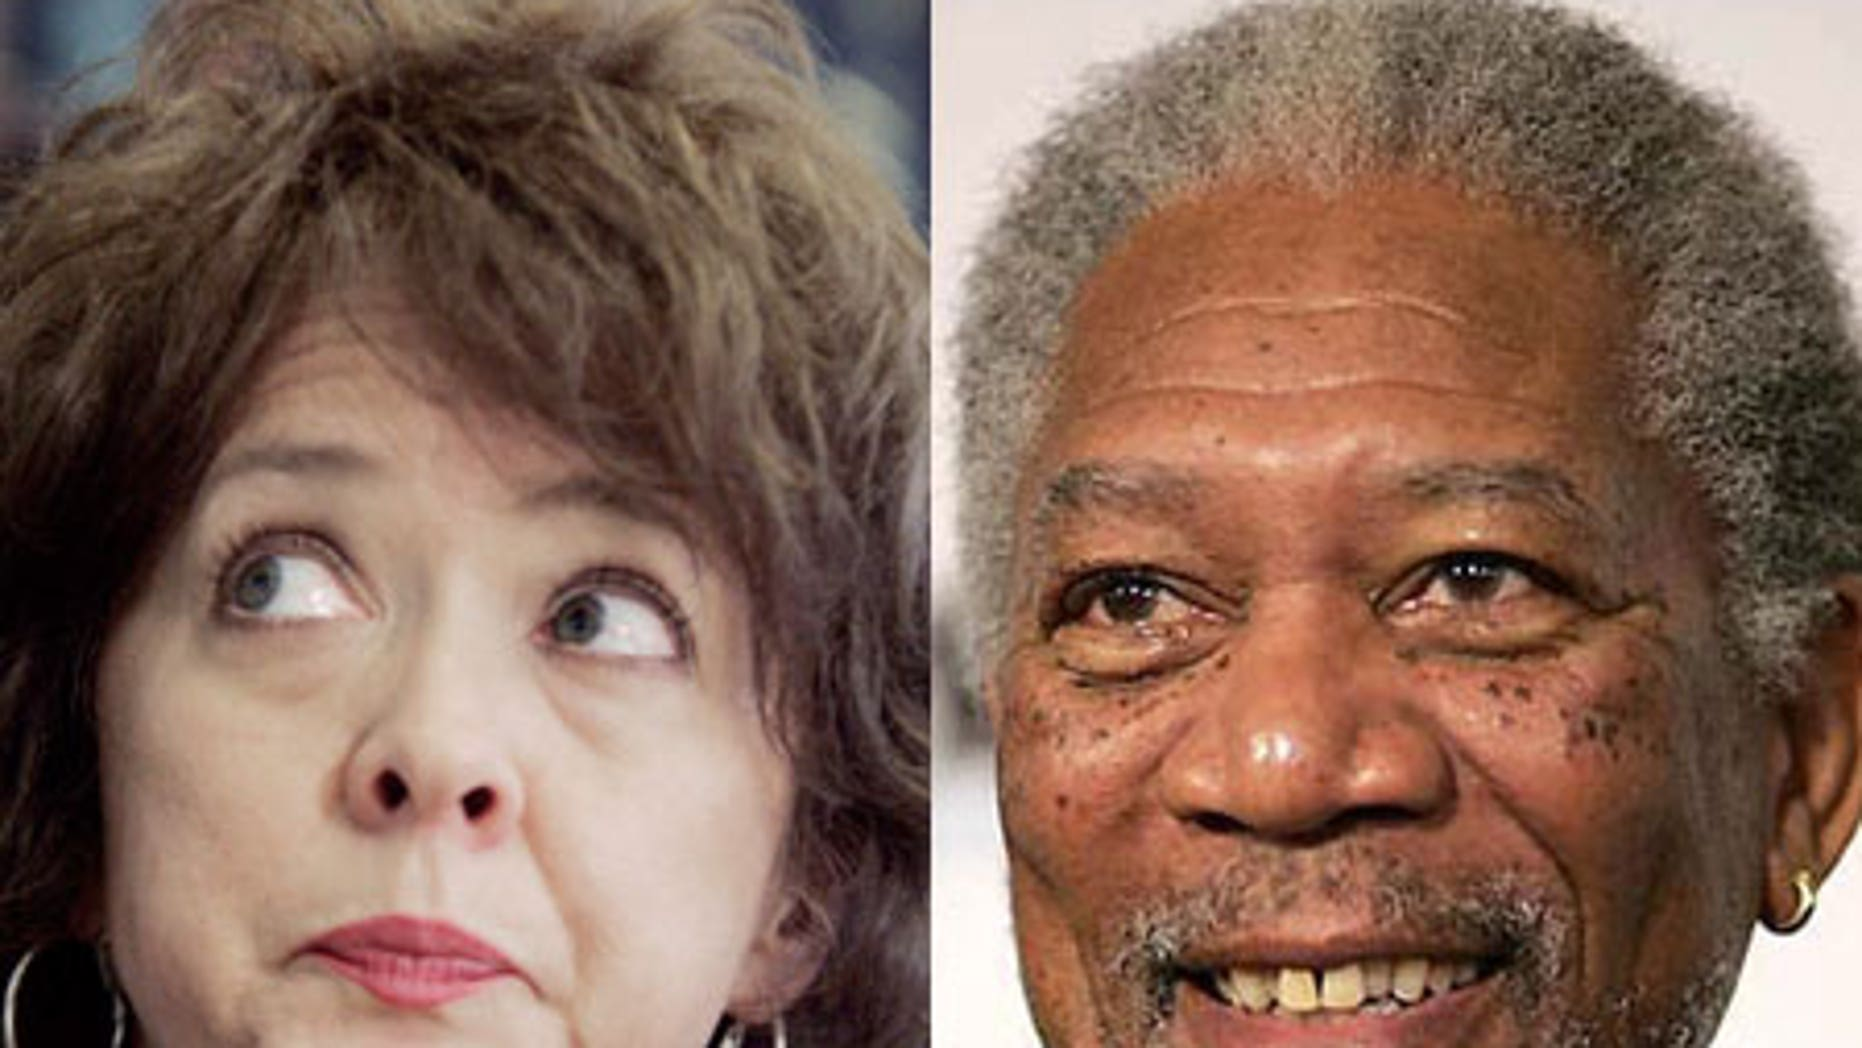 Demaris Meyer (right) is suing actor Morgan Freeman for negligence stemming from an accident last summer.